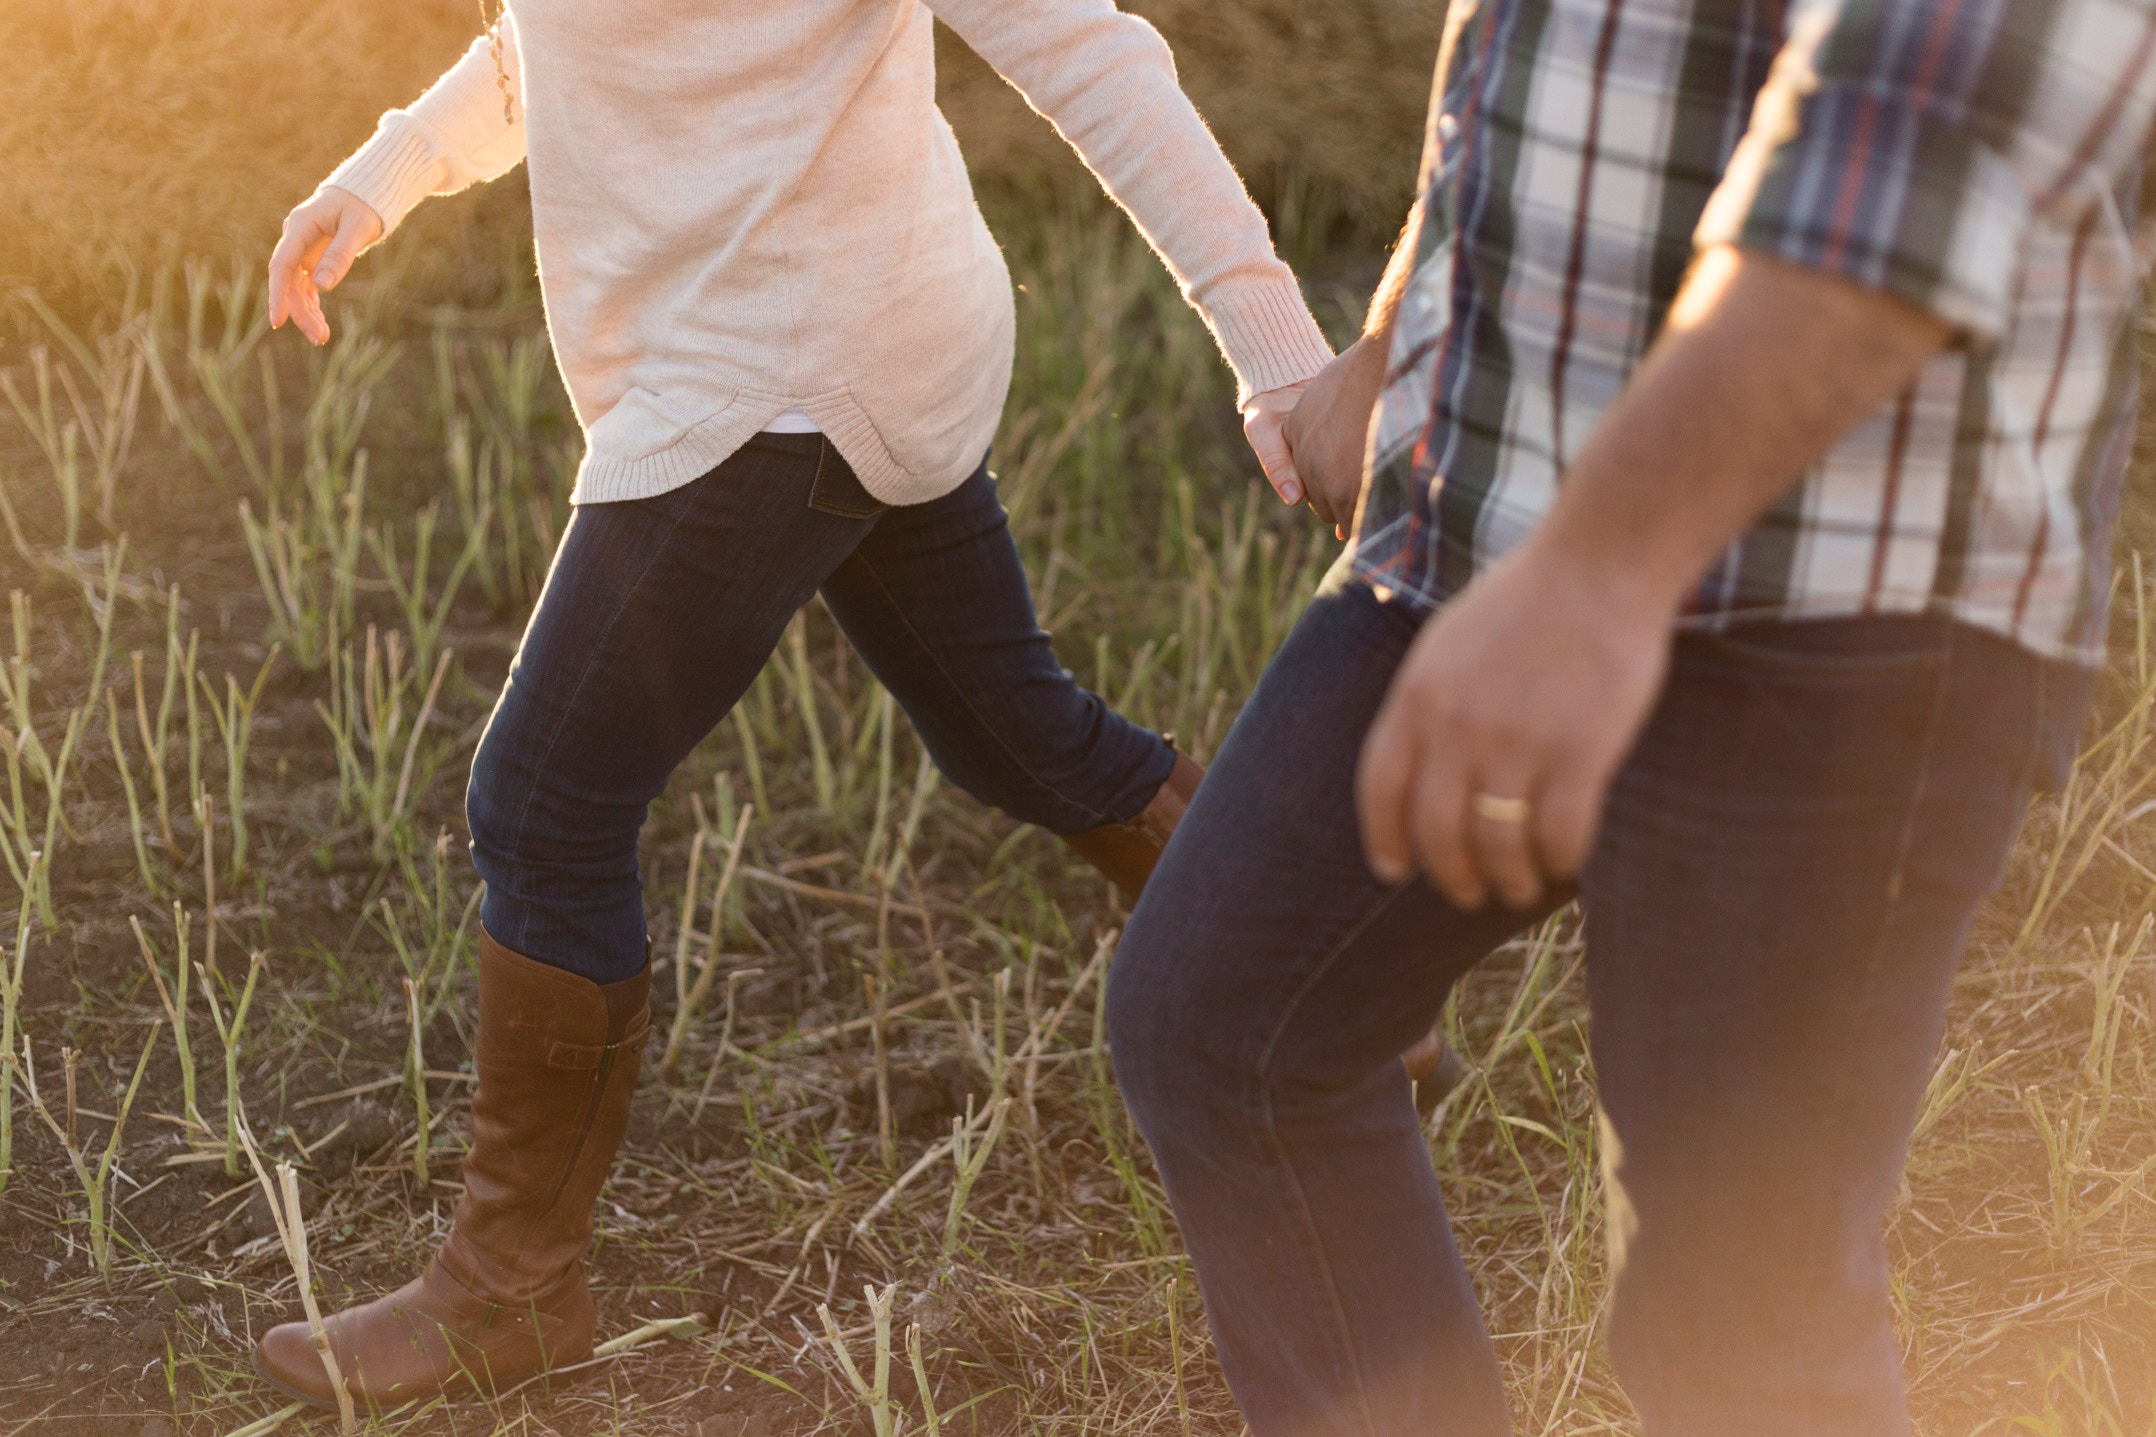 Couple walking through a field. Photo: Prescilla du Preez (Unsplash)